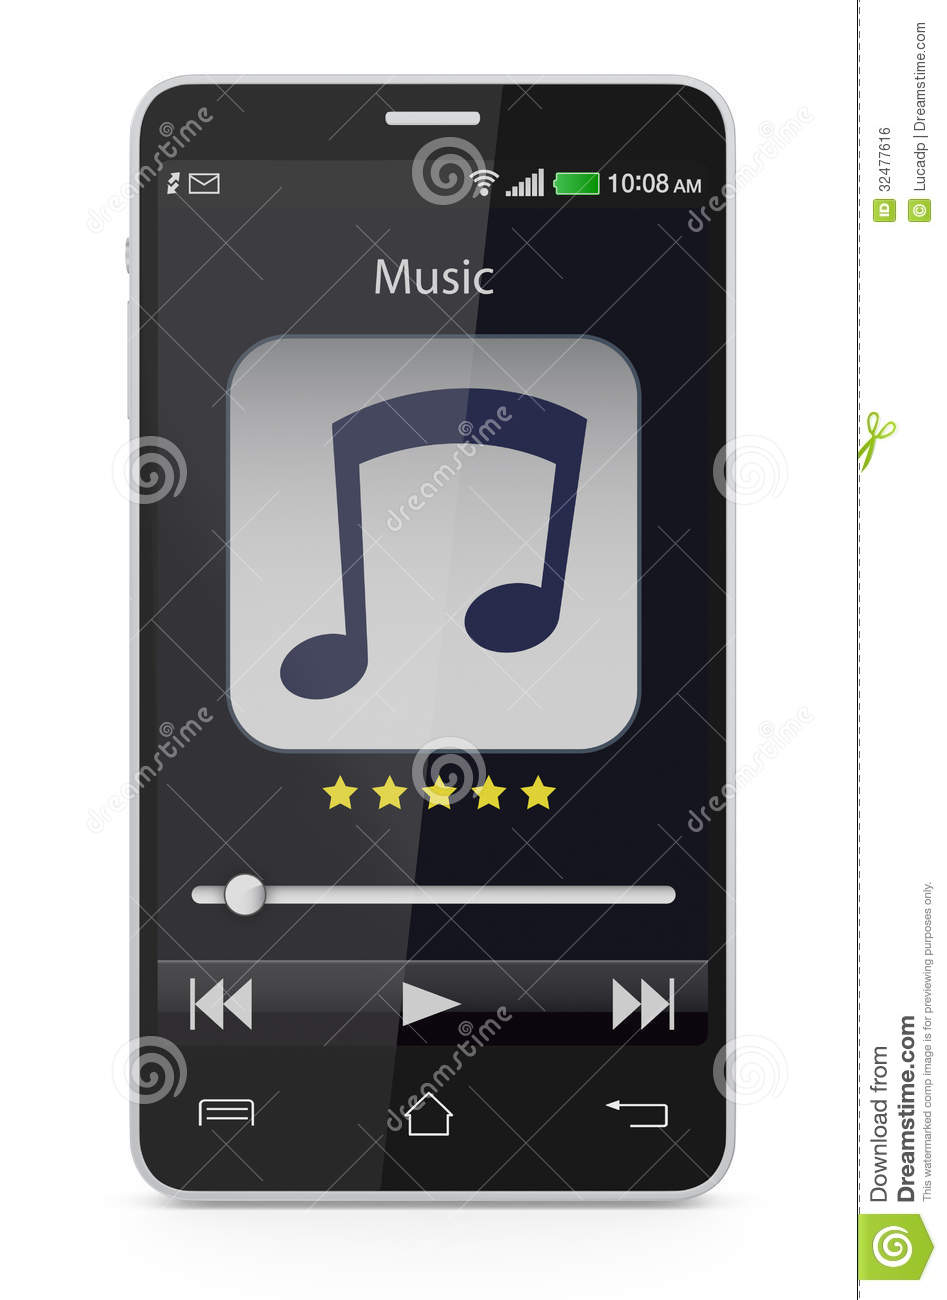 free mobile phone music video downloads